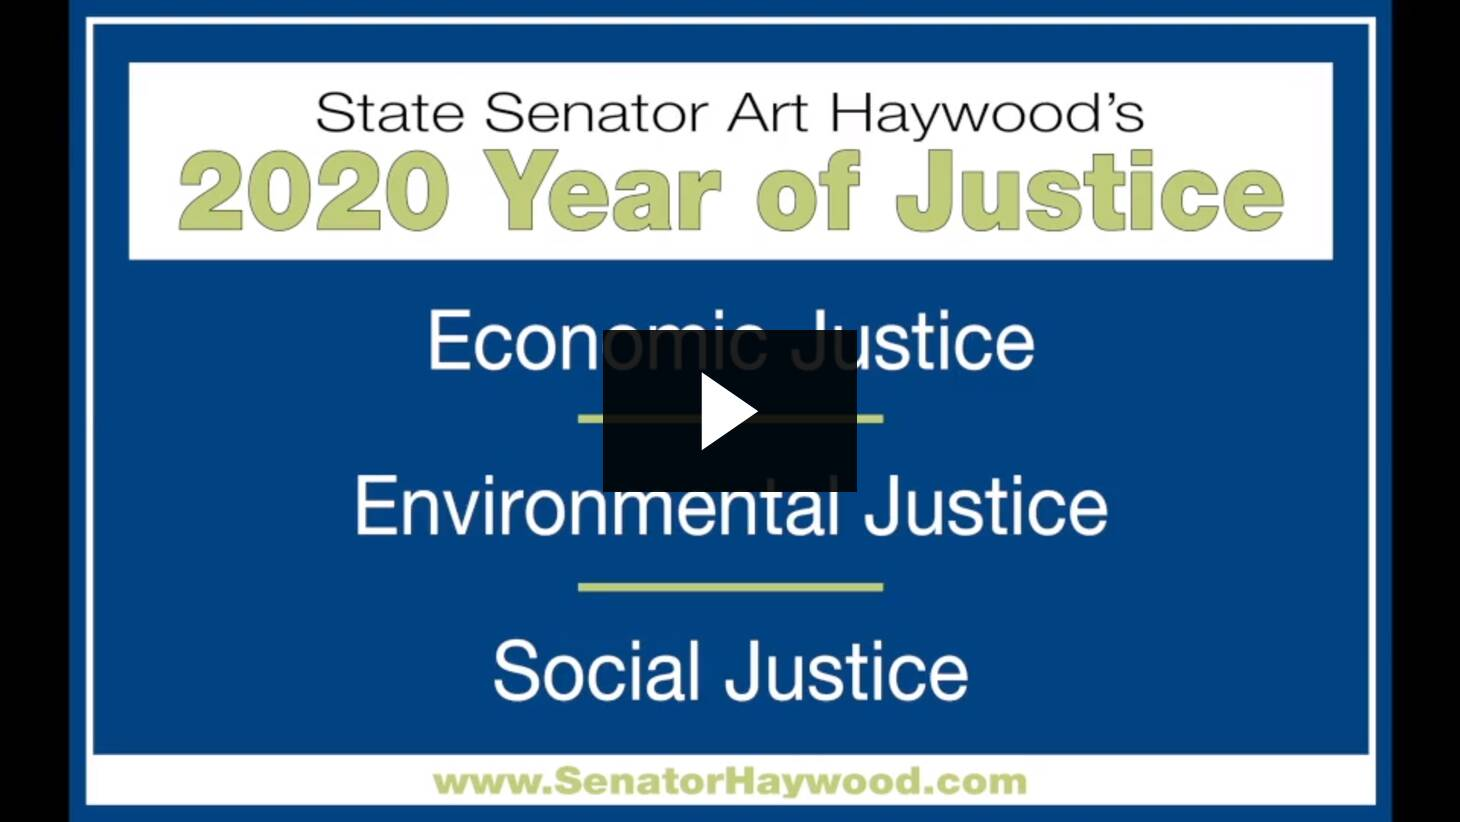 Senator Haywood Announces the 2020 Year of Justice :: January 9, 2020